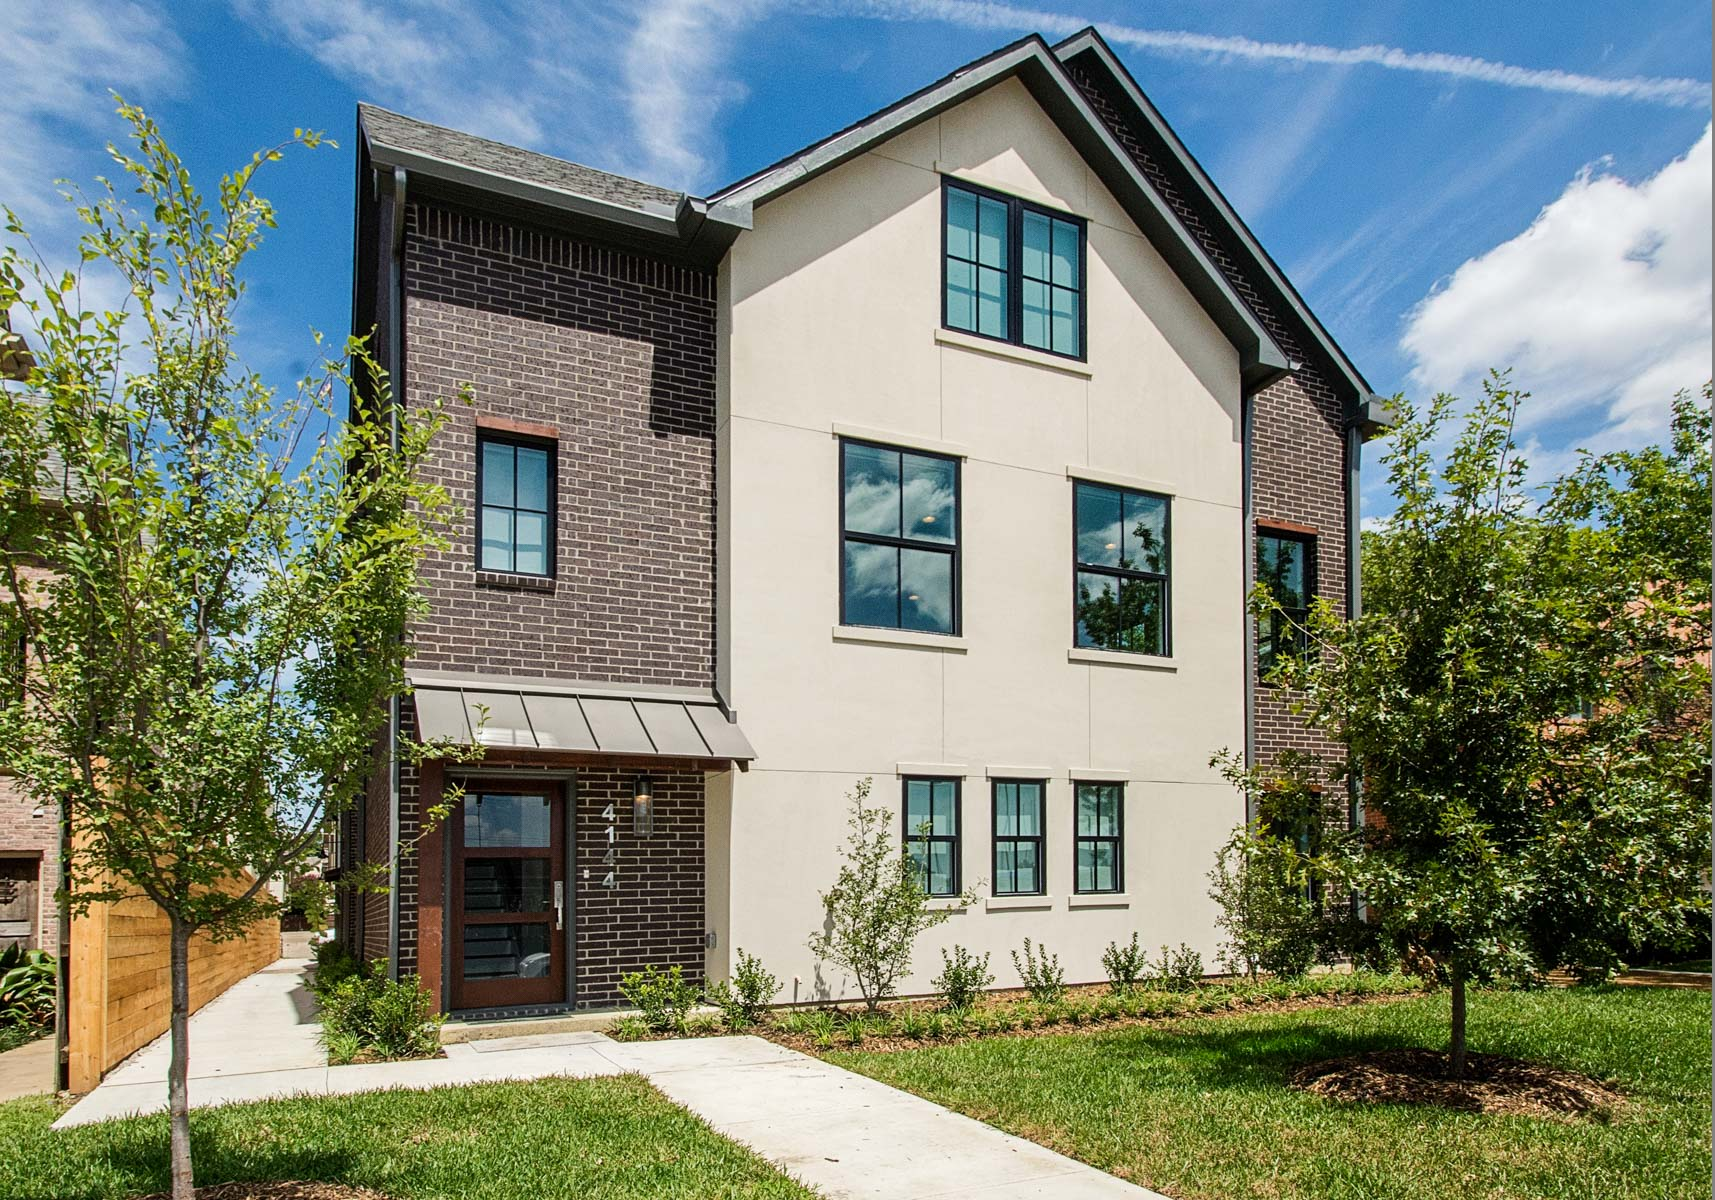 共管物業 為 出售 在 Contemporary University Park Townhomes 4144 Druid Lane #2, Dallas, 德克薩斯州, 75205 美國